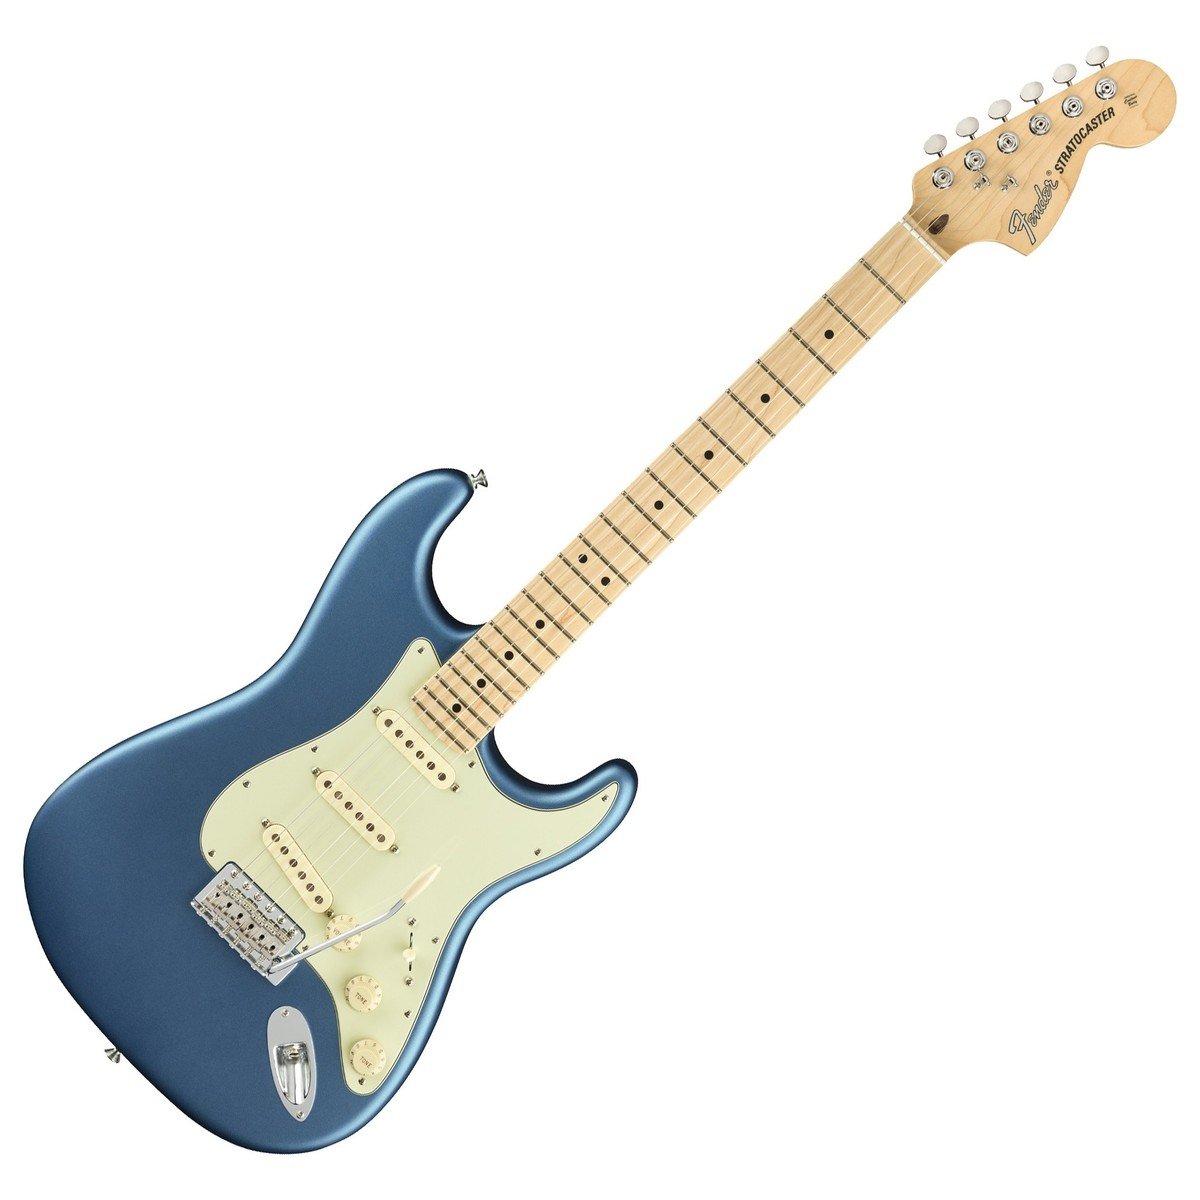 fender american performer stratocaster mn satin lake placid blue at gear4music. Black Bedroom Furniture Sets. Home Design Ideas